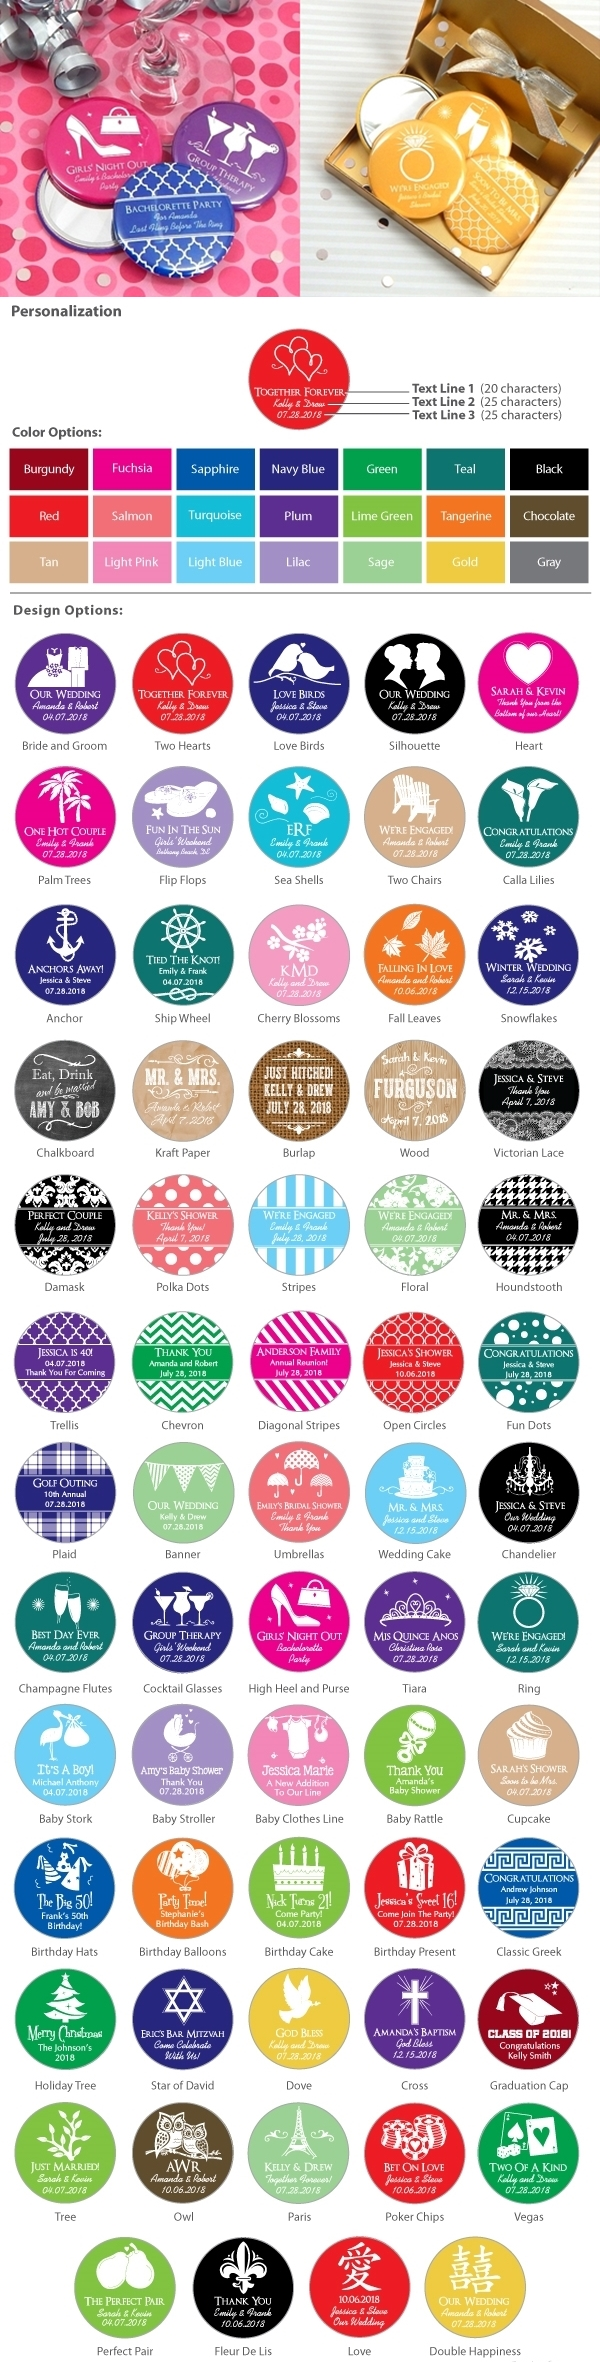 Personalized Round Glossy-Topped Compact Mirror (Silhouette Designs)